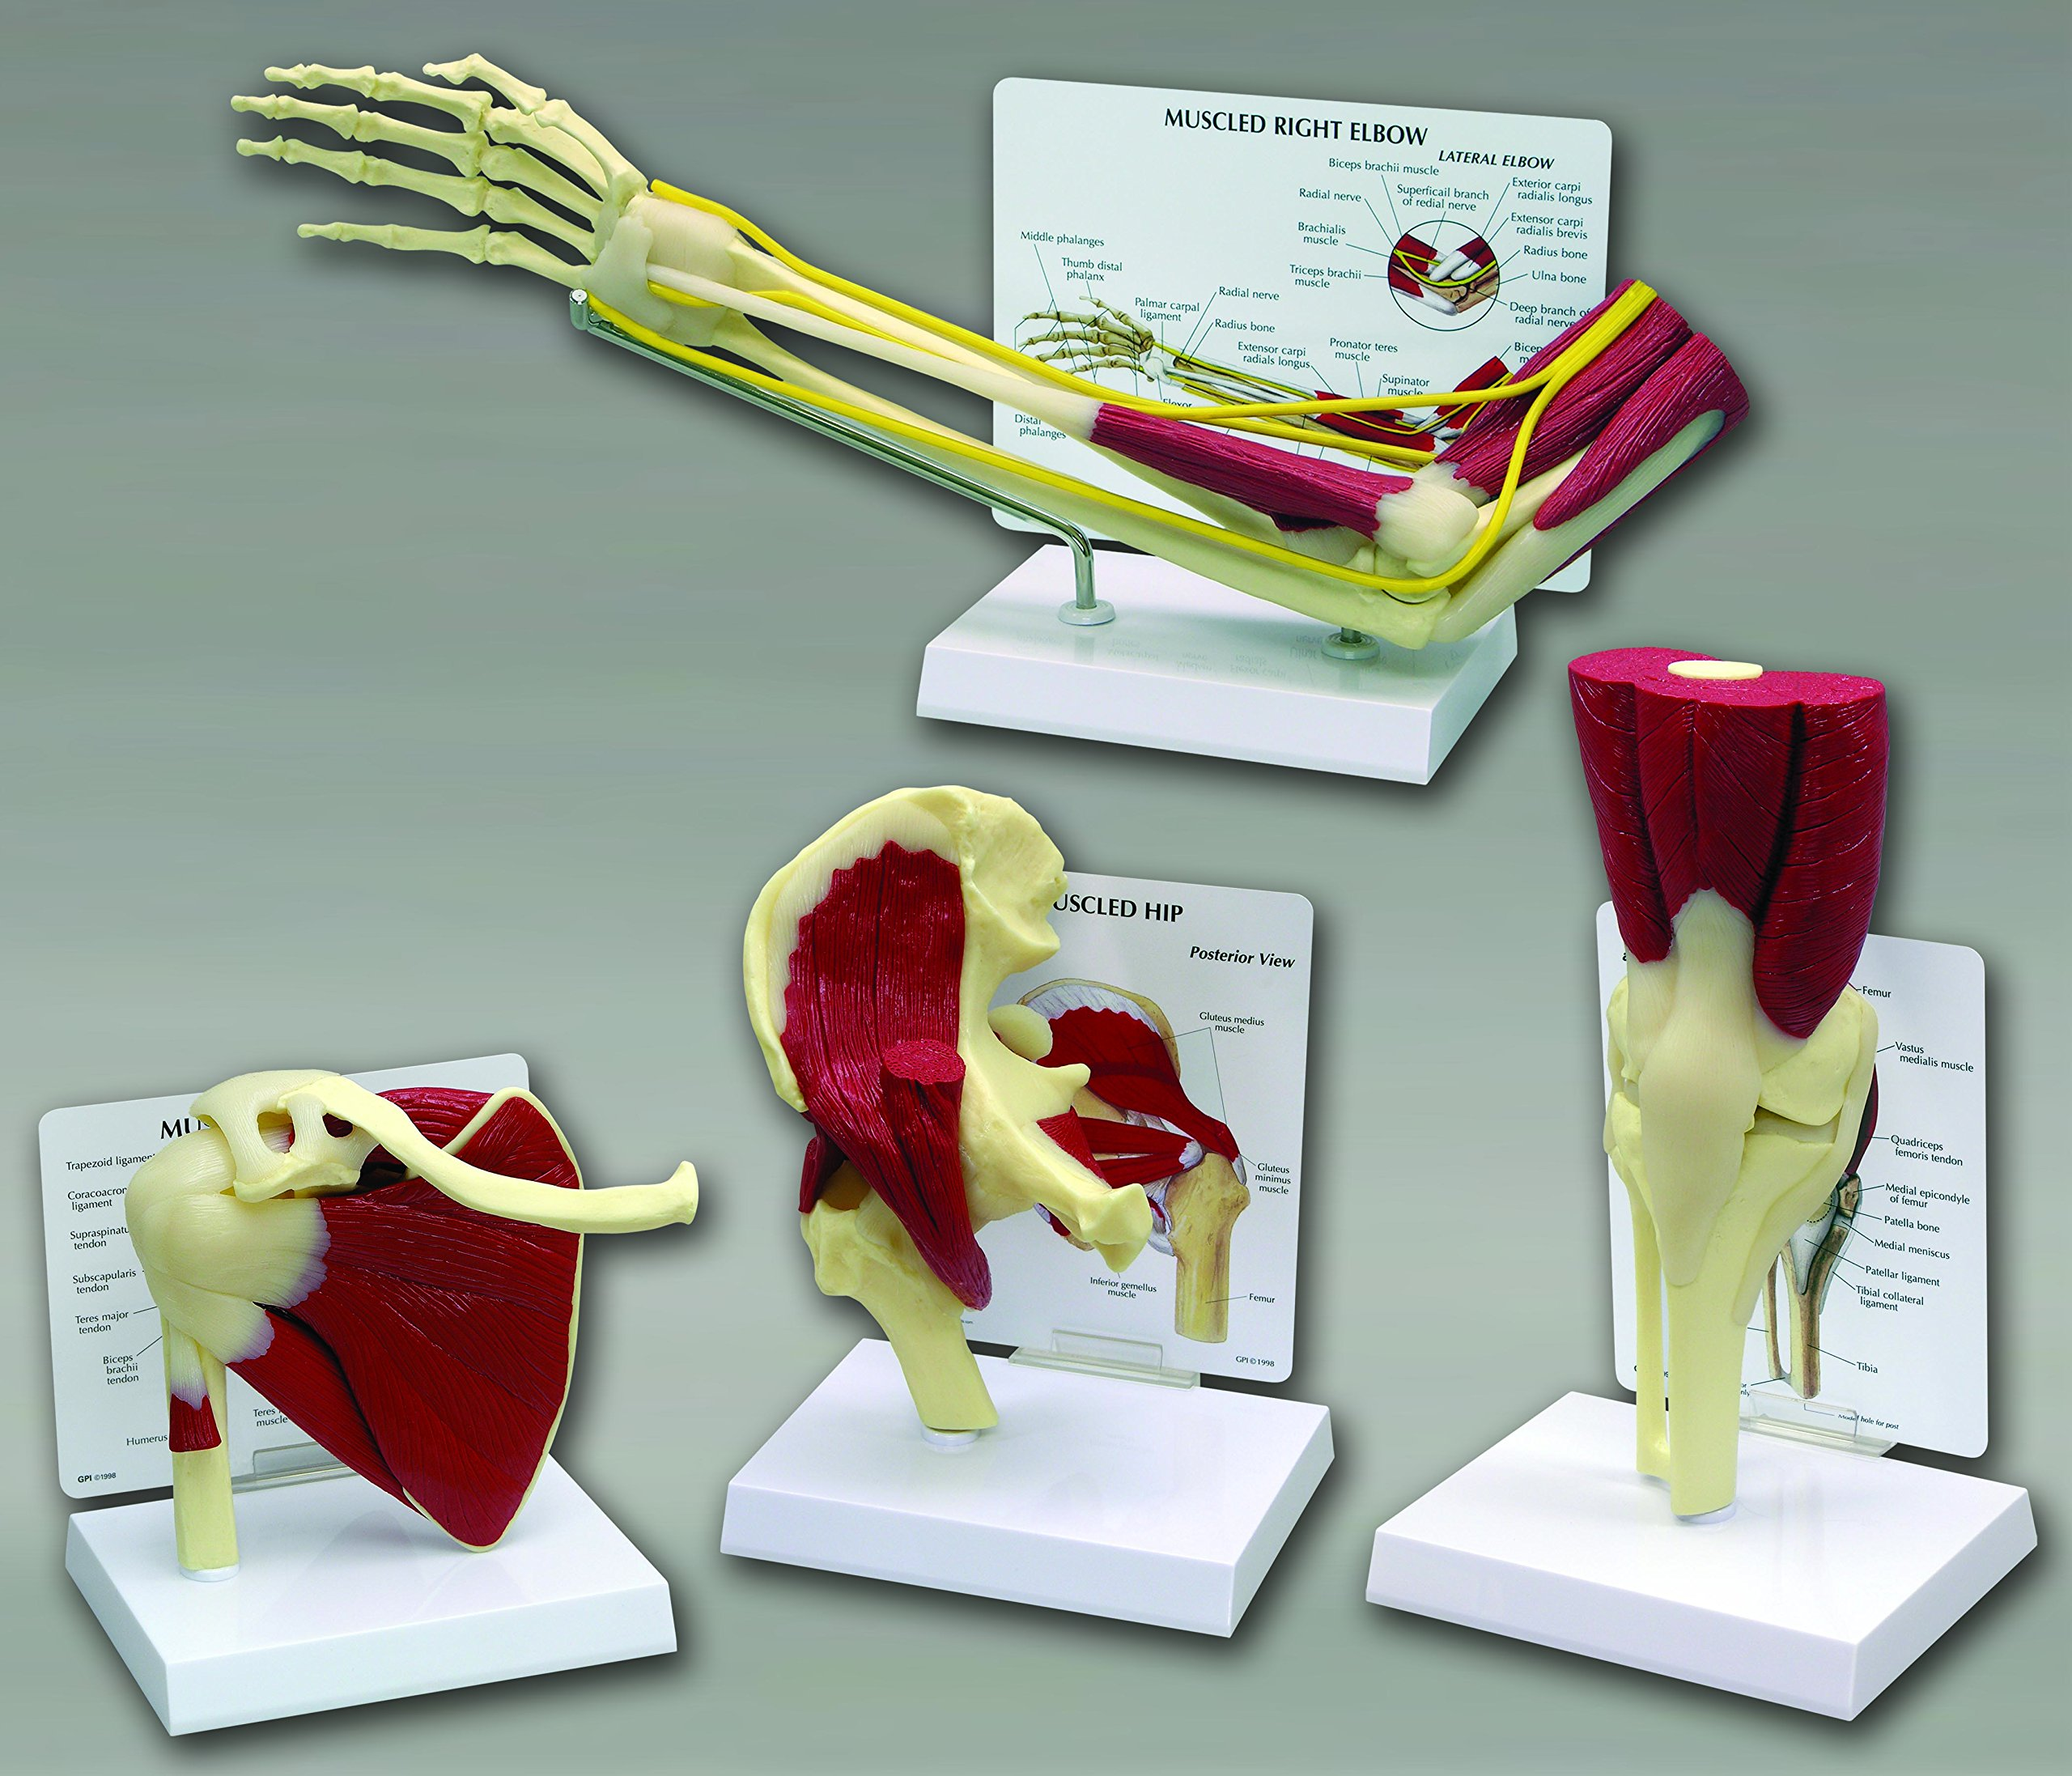 Muscled Shoulder Bone Joint Anatomical Classroom Education Model CEM